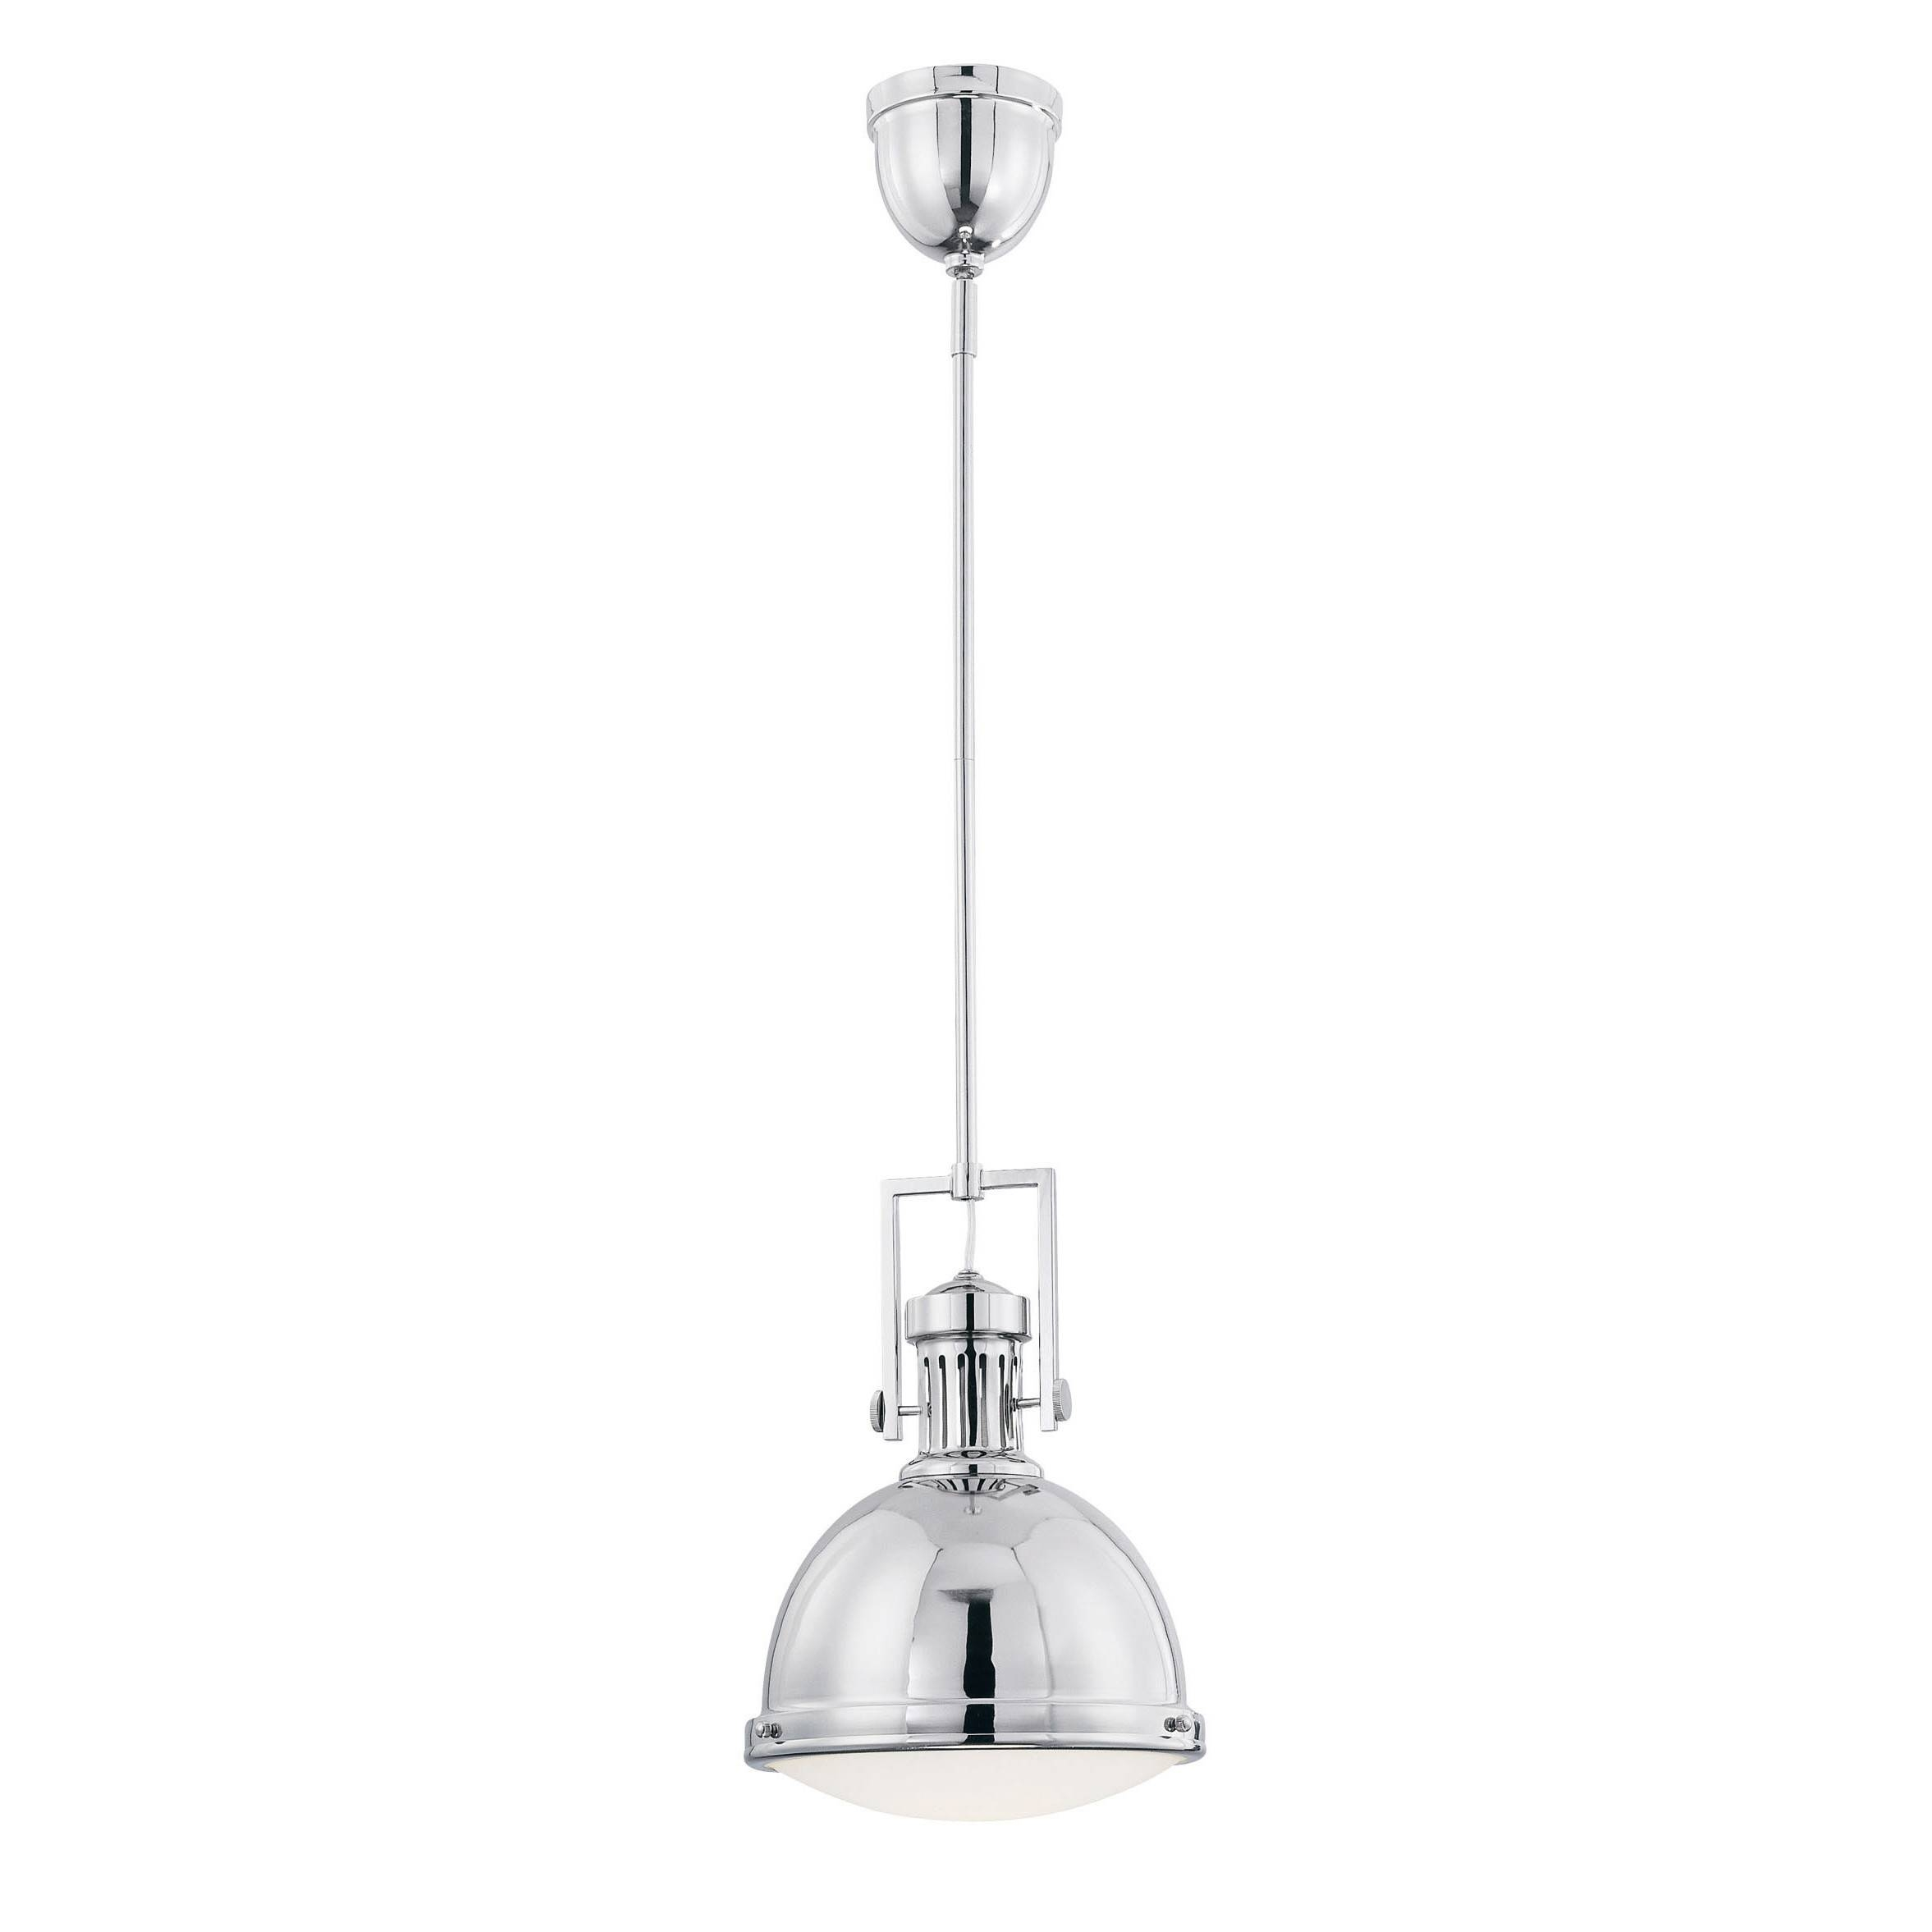 Appliances: Stylish Chrome Finish Stainless Steel Industrial inside Stainless Steel Industrial Pendant Lights (Image 3 of 15)